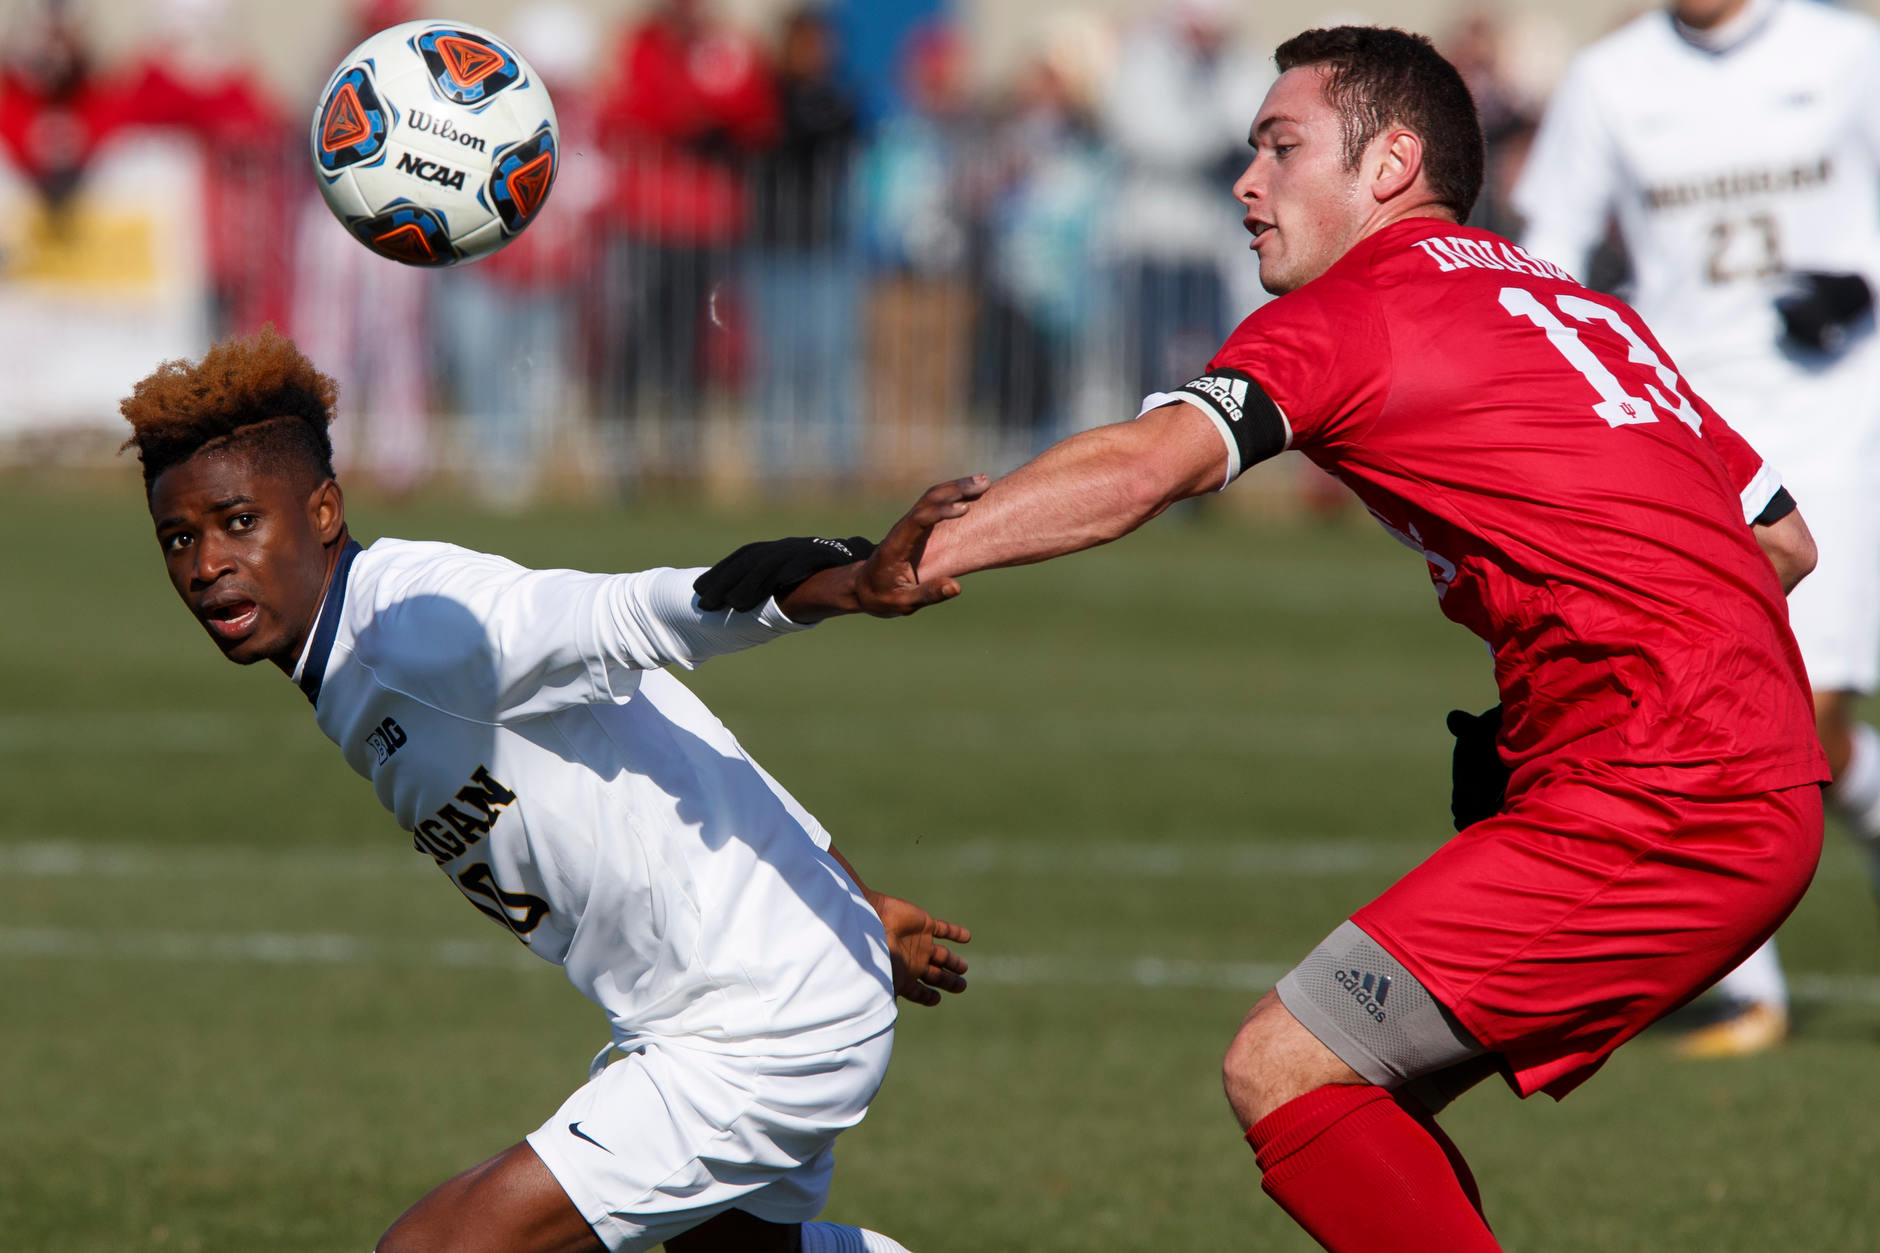 Michigan's Umar Farouk Osman (10) and Indiana's Francesco Moore (13) compete for the ball during the Big Ten Men's Soccer Tournament championship game at Grand Park in Westfield, Indiana on Sunday, Nov. 11, 2018. (Photo by James Brosher)